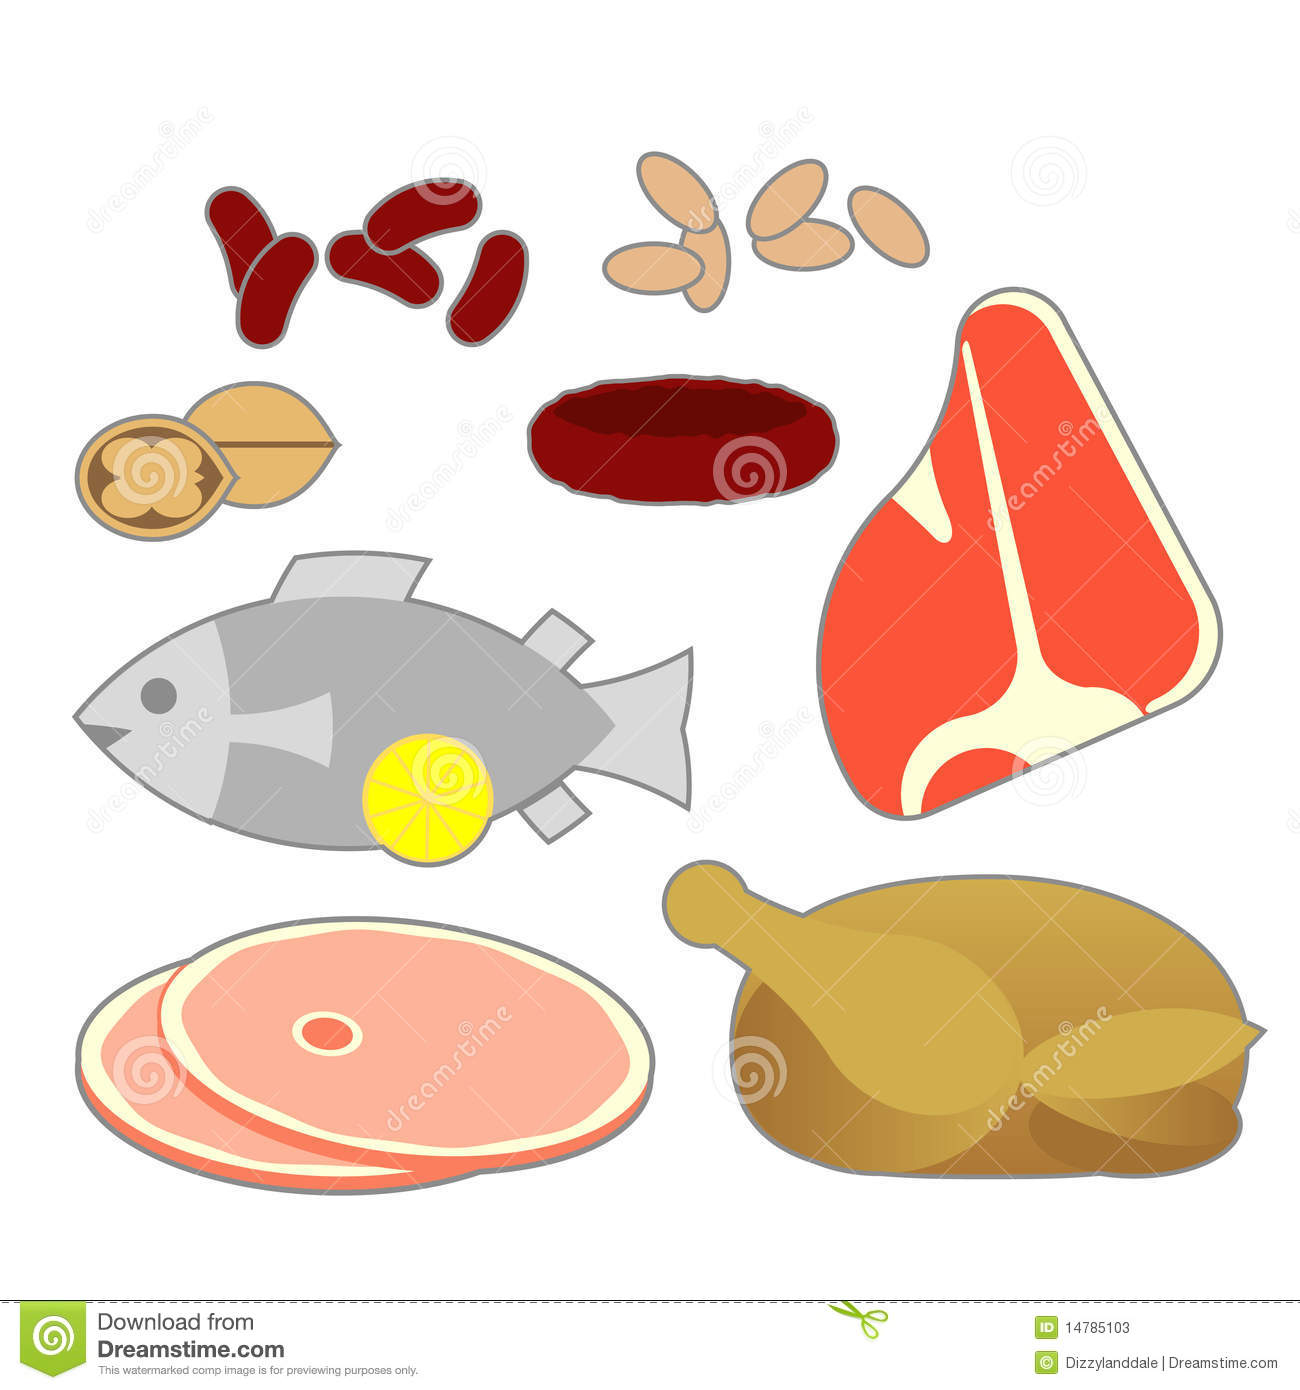 Of The Main Meat Fish Protein Foods In The New Foos Pyramid